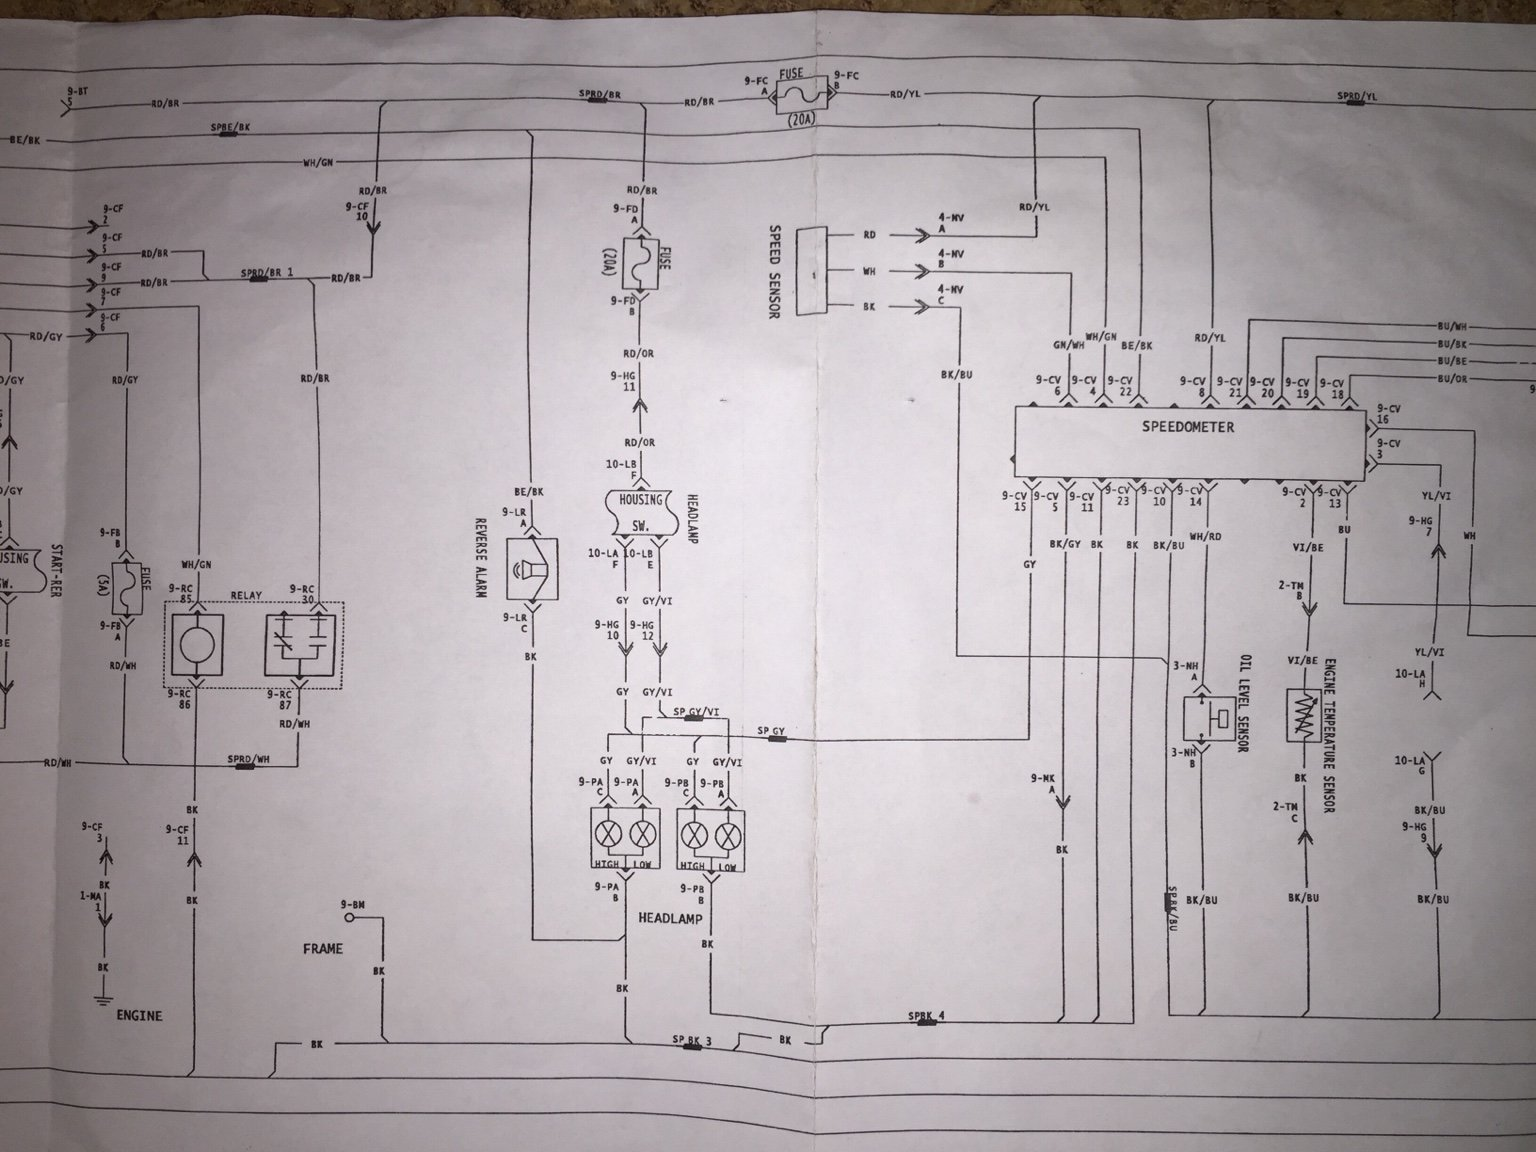 2004 Rev Wiring Diagram 800ho  Needed